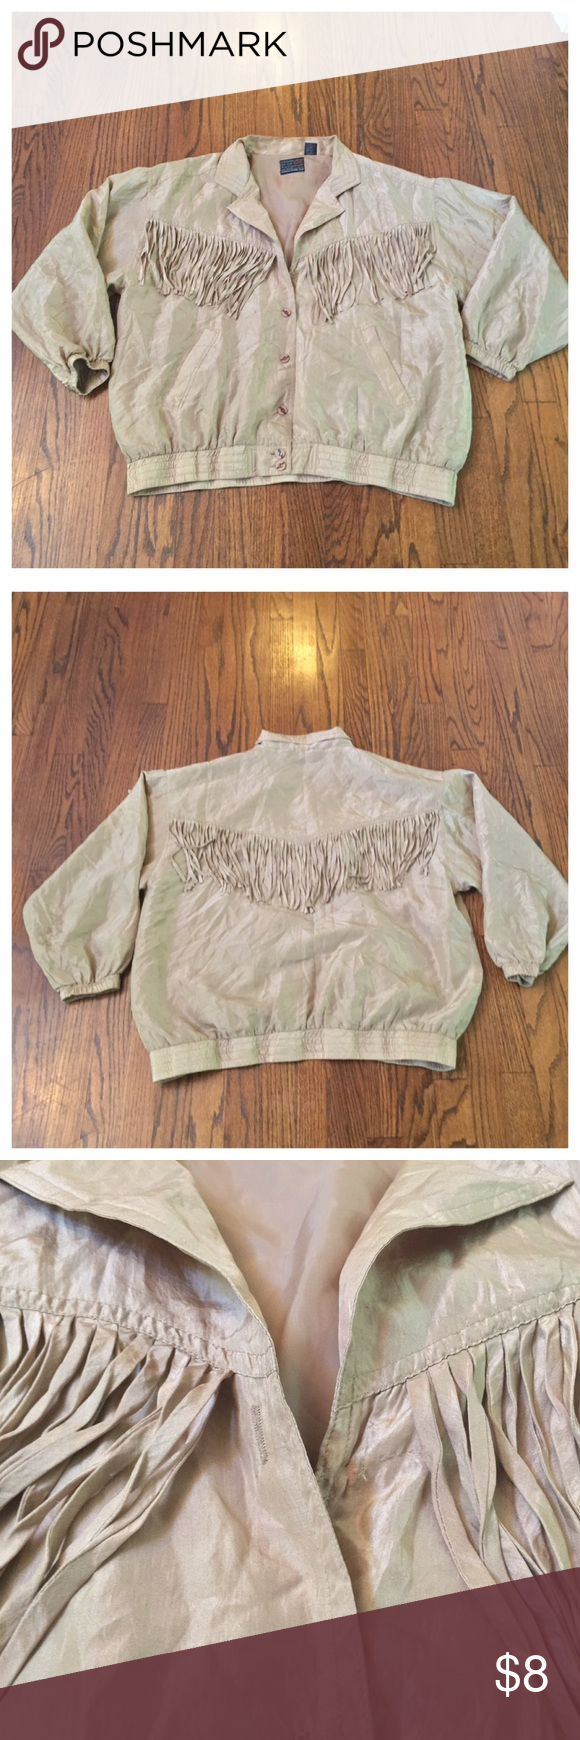 Murel SZ LARGE Fringe Sweat Suit Jacket In good condition. No holes. No rips. No tears. No stains. Murel Jackets & Coats